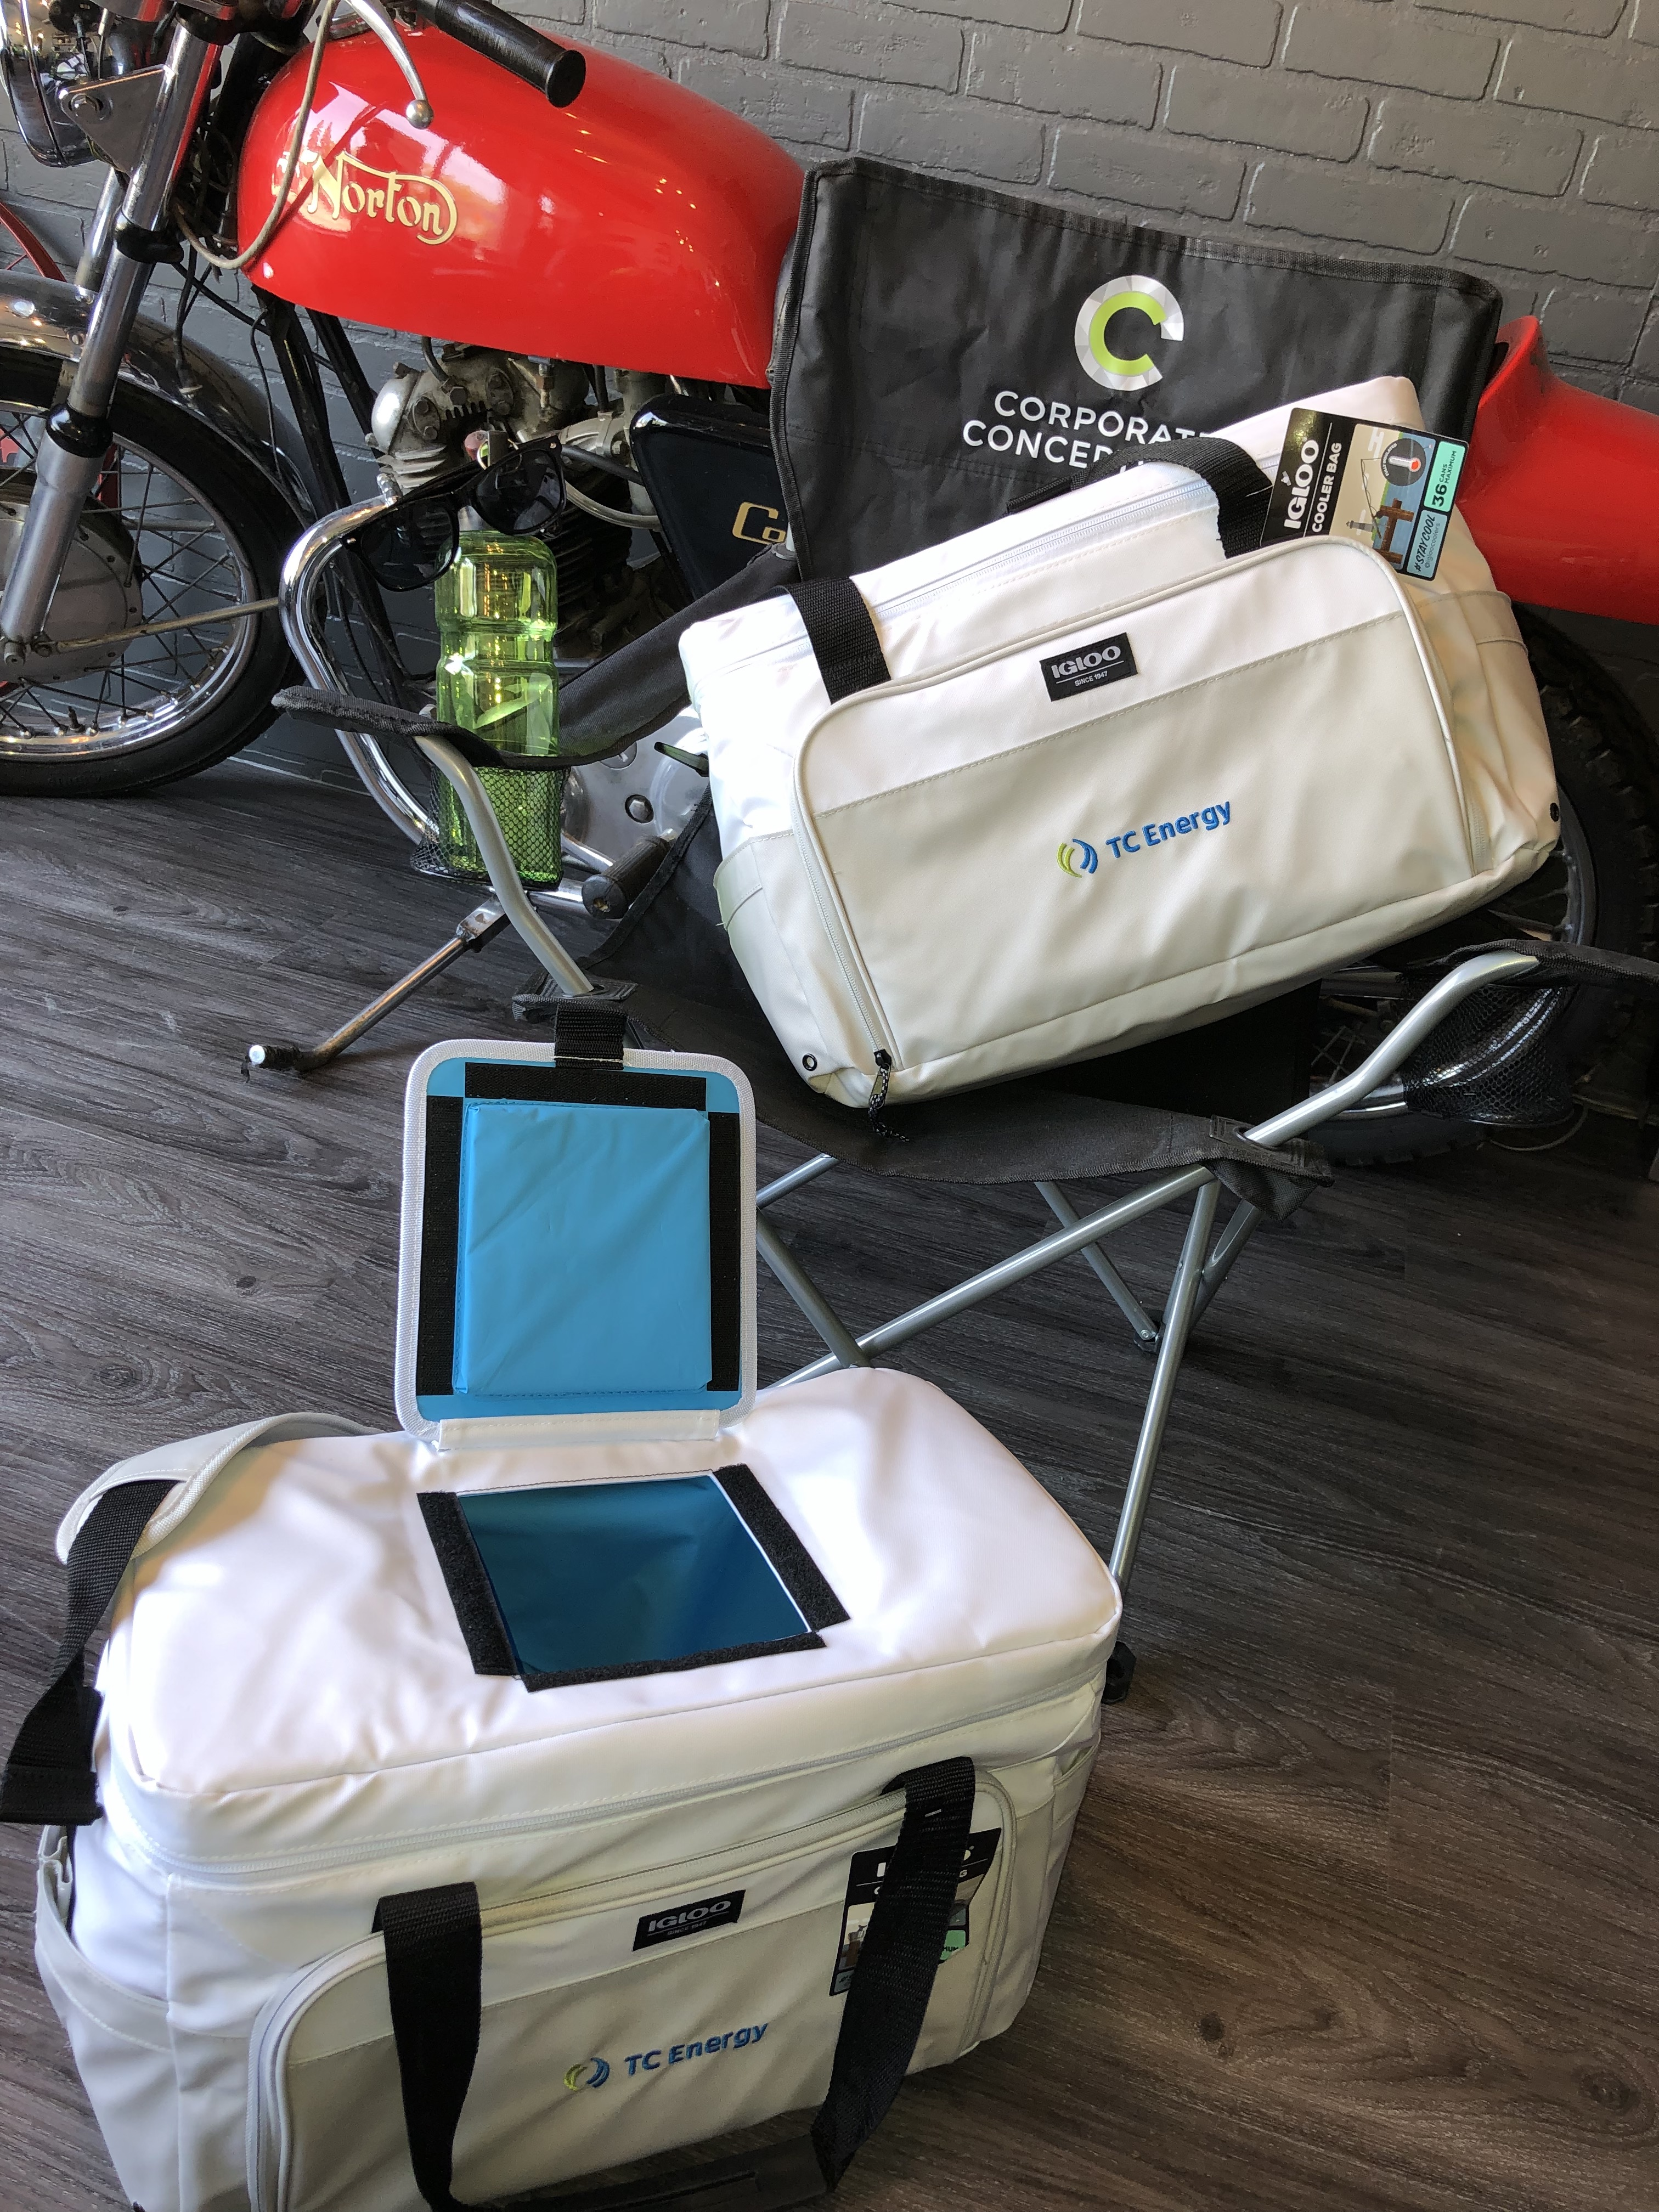 insulated-cooler-bags-corporate-concepts-winnipeg